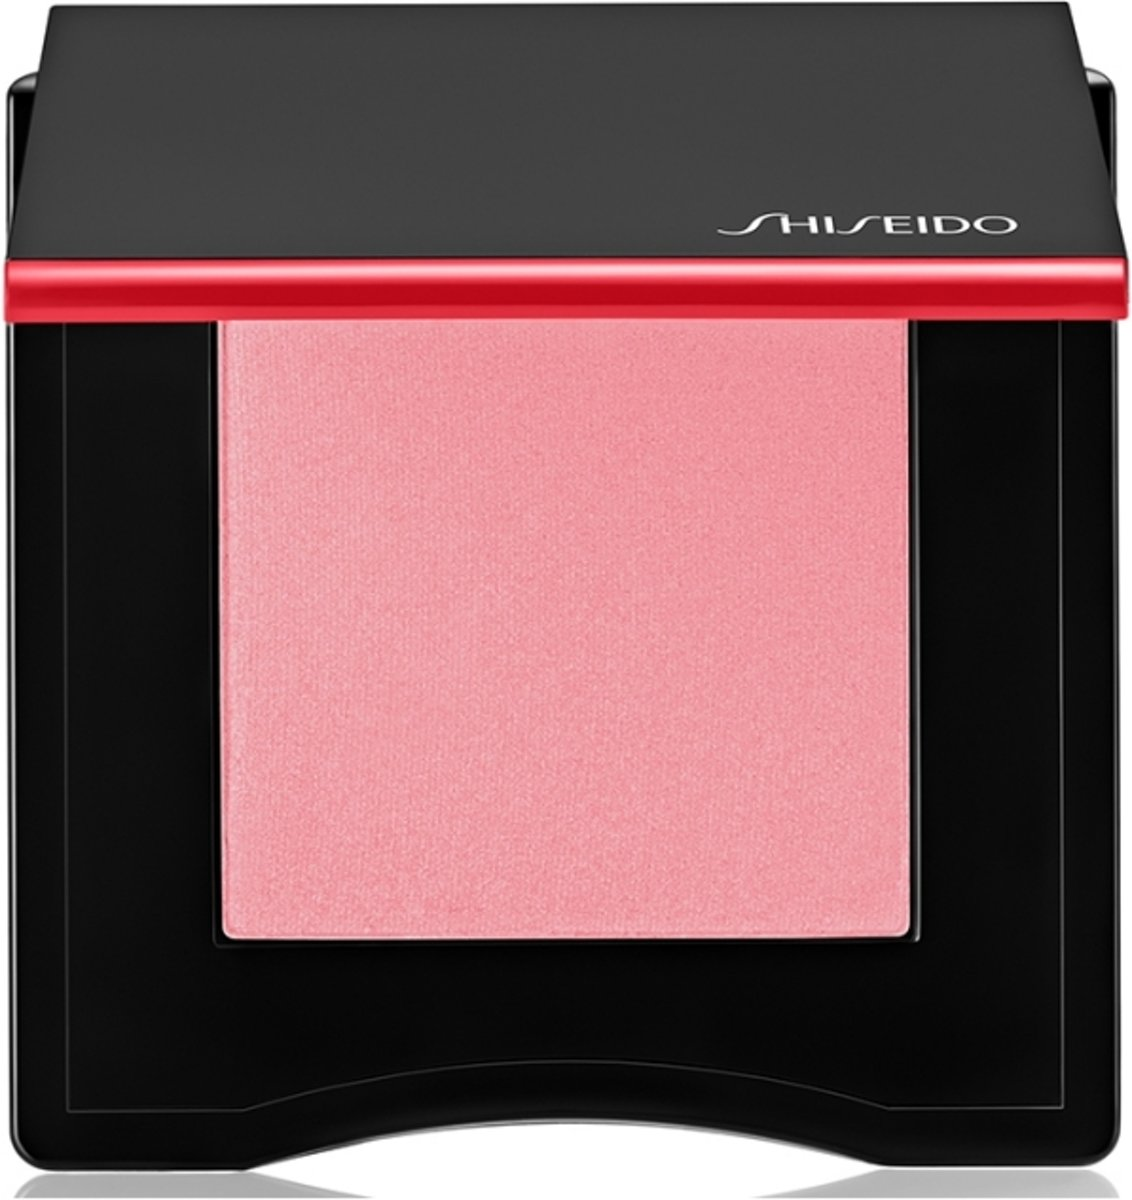 Shiseido InnerGlow CheekPowder Blush 4 gr - 03 - Floating Rose